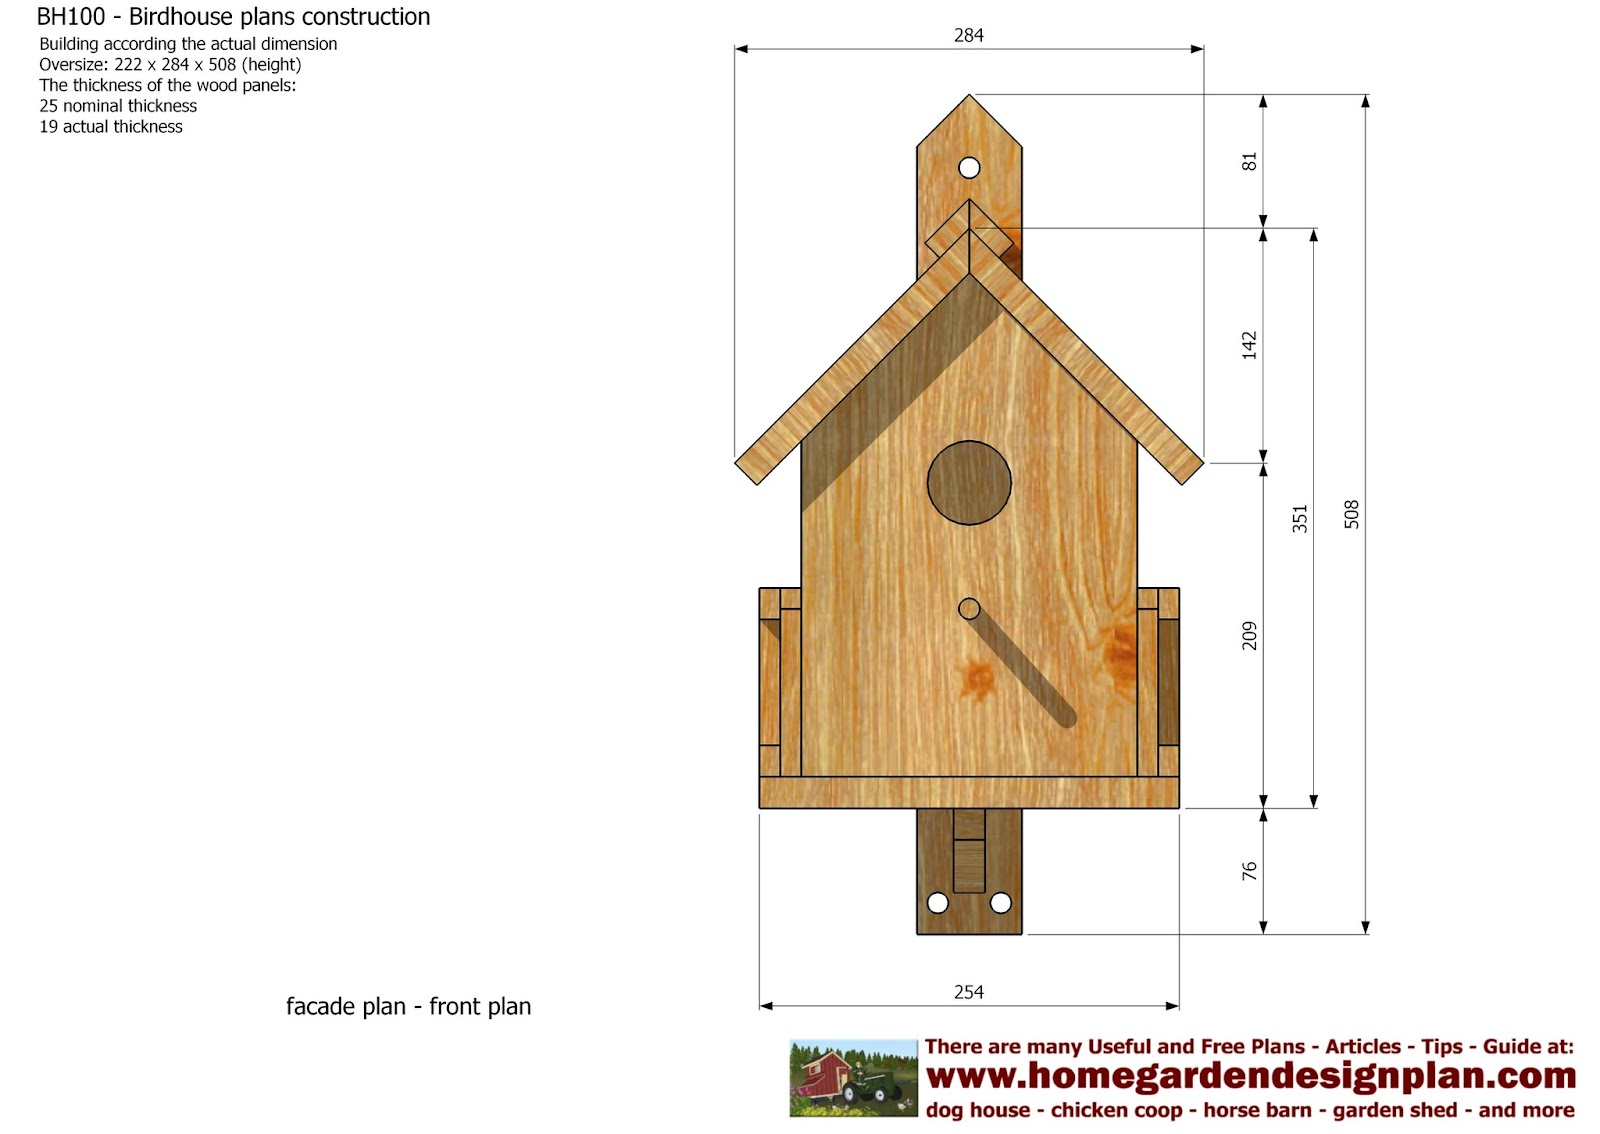 Easy build bird house plans - House plans